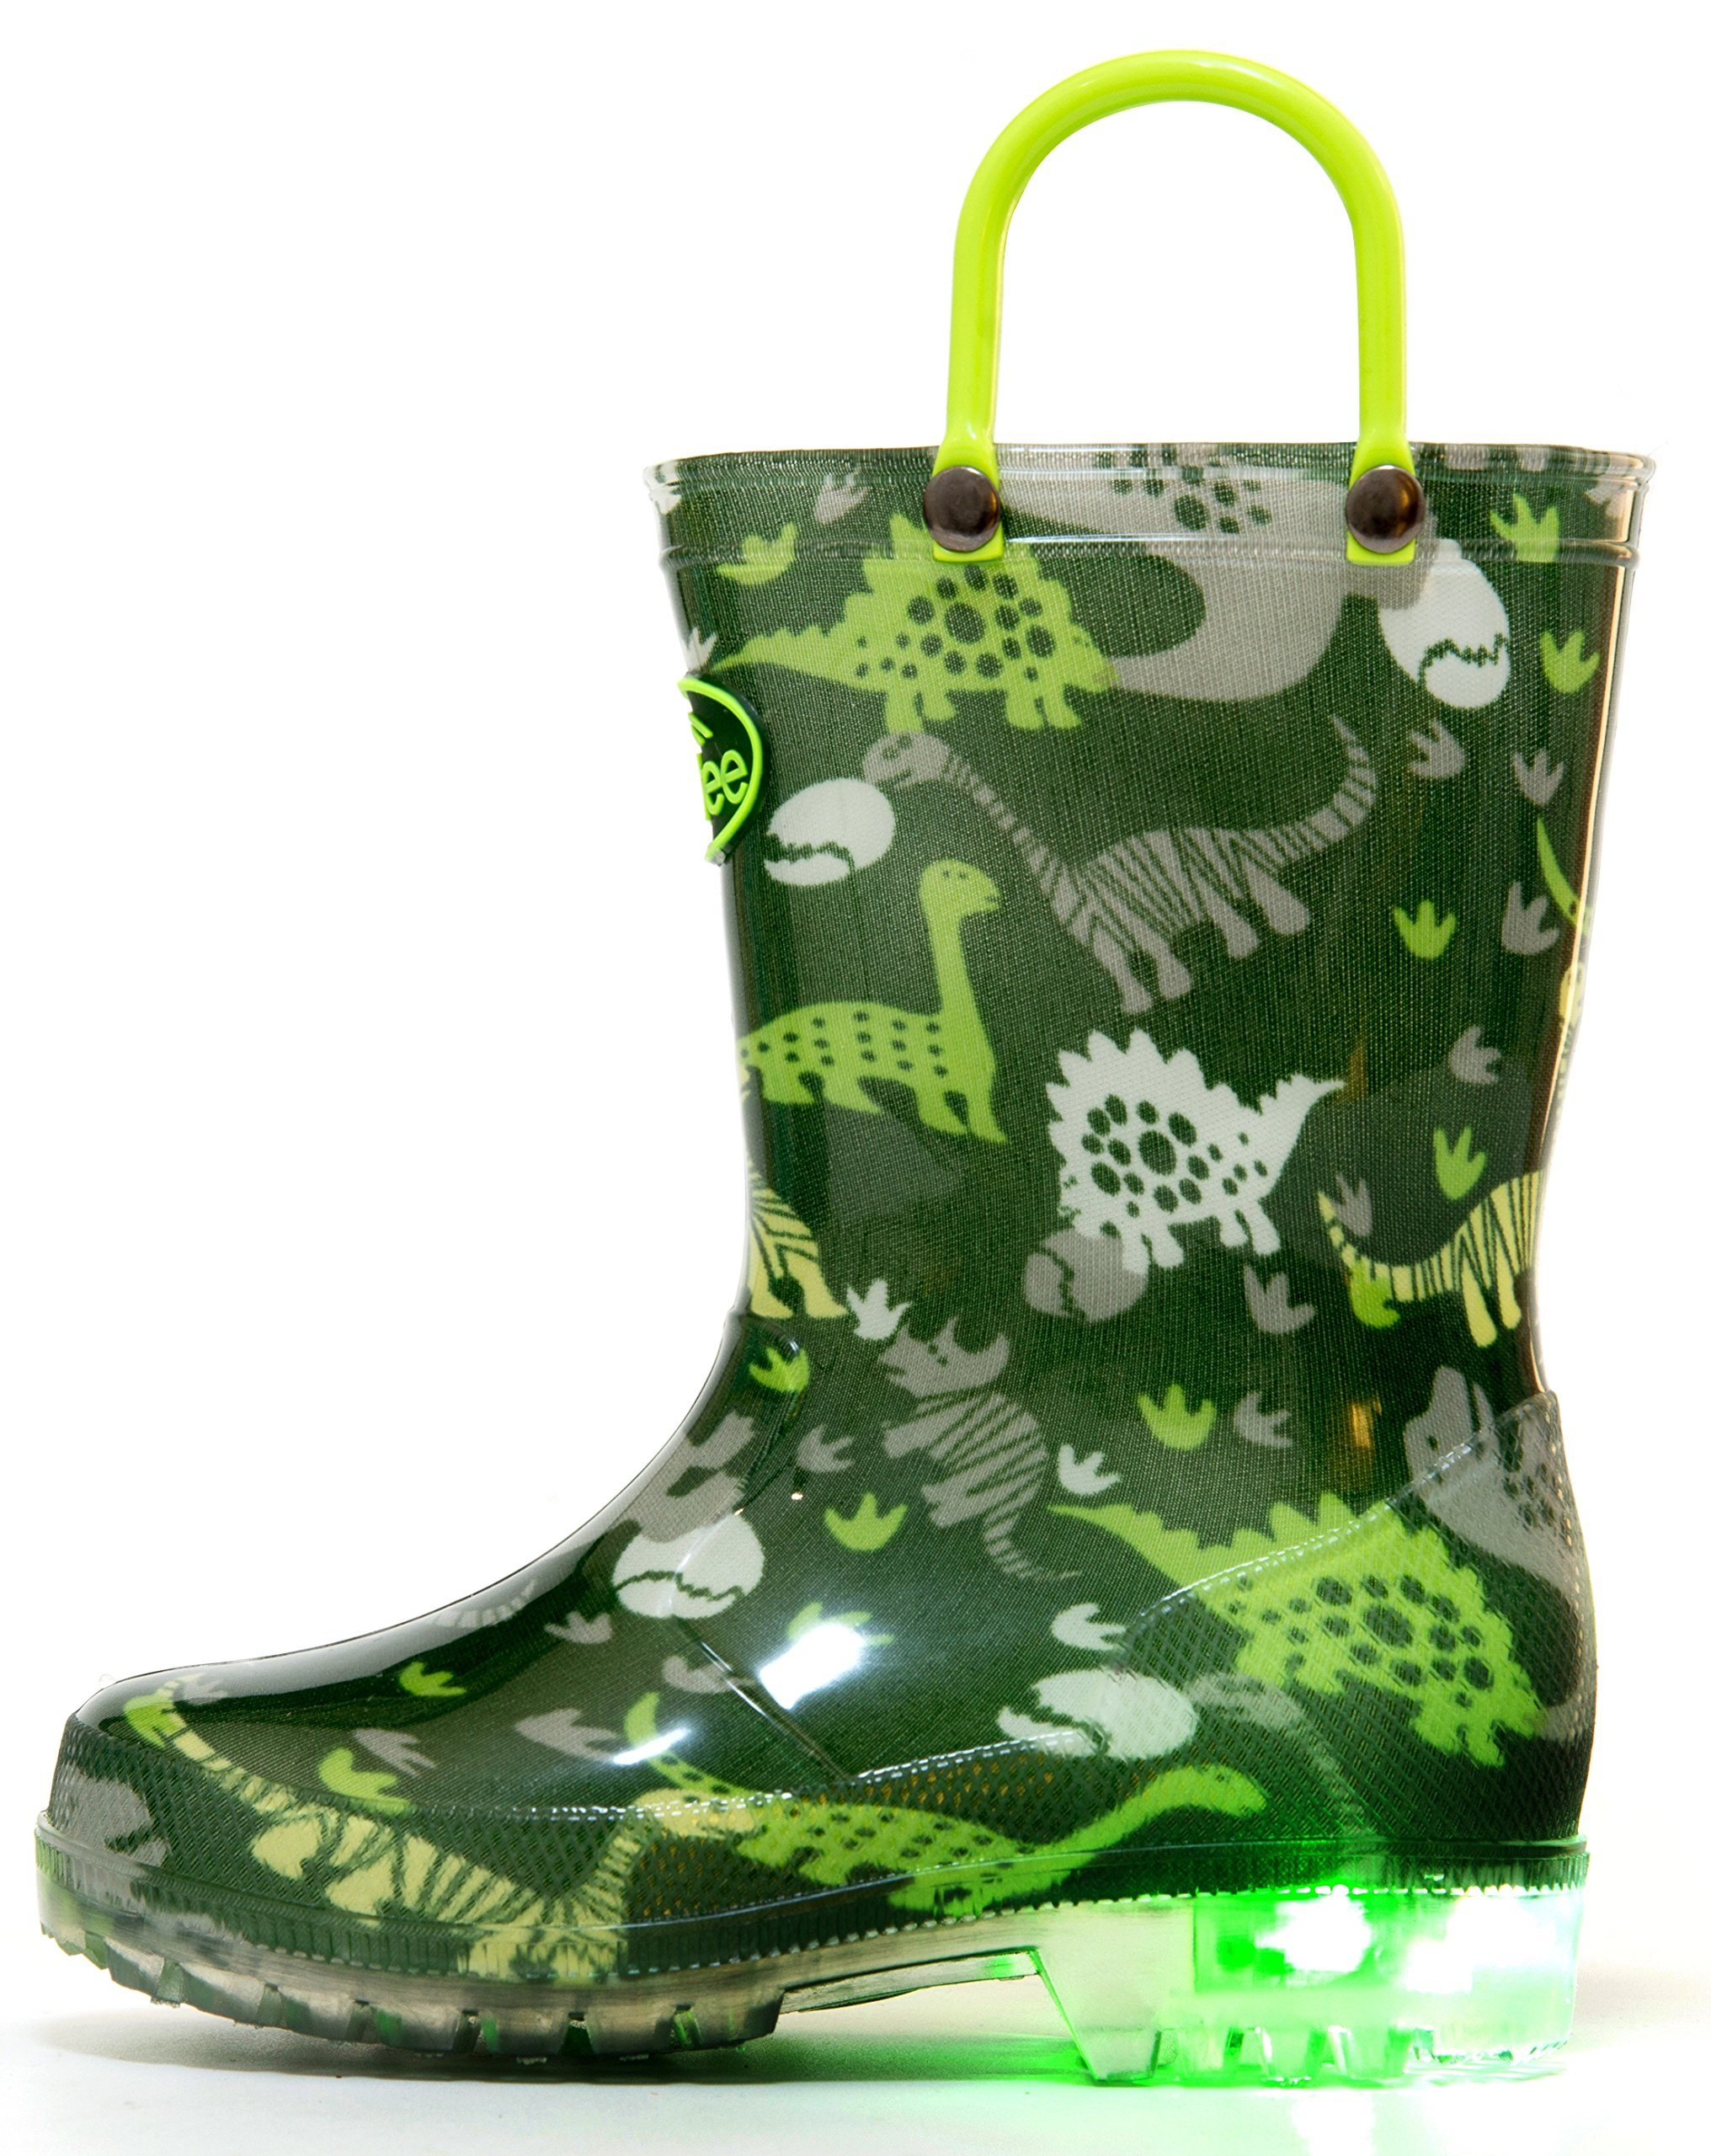 Outee Kids Toddler Boys Rain Boots Waterproof Light Up Lightweight Green Dinosaur Cute Lovely Funny Print with Easy-On Handles Classic Comfortable (Size 12,Green)